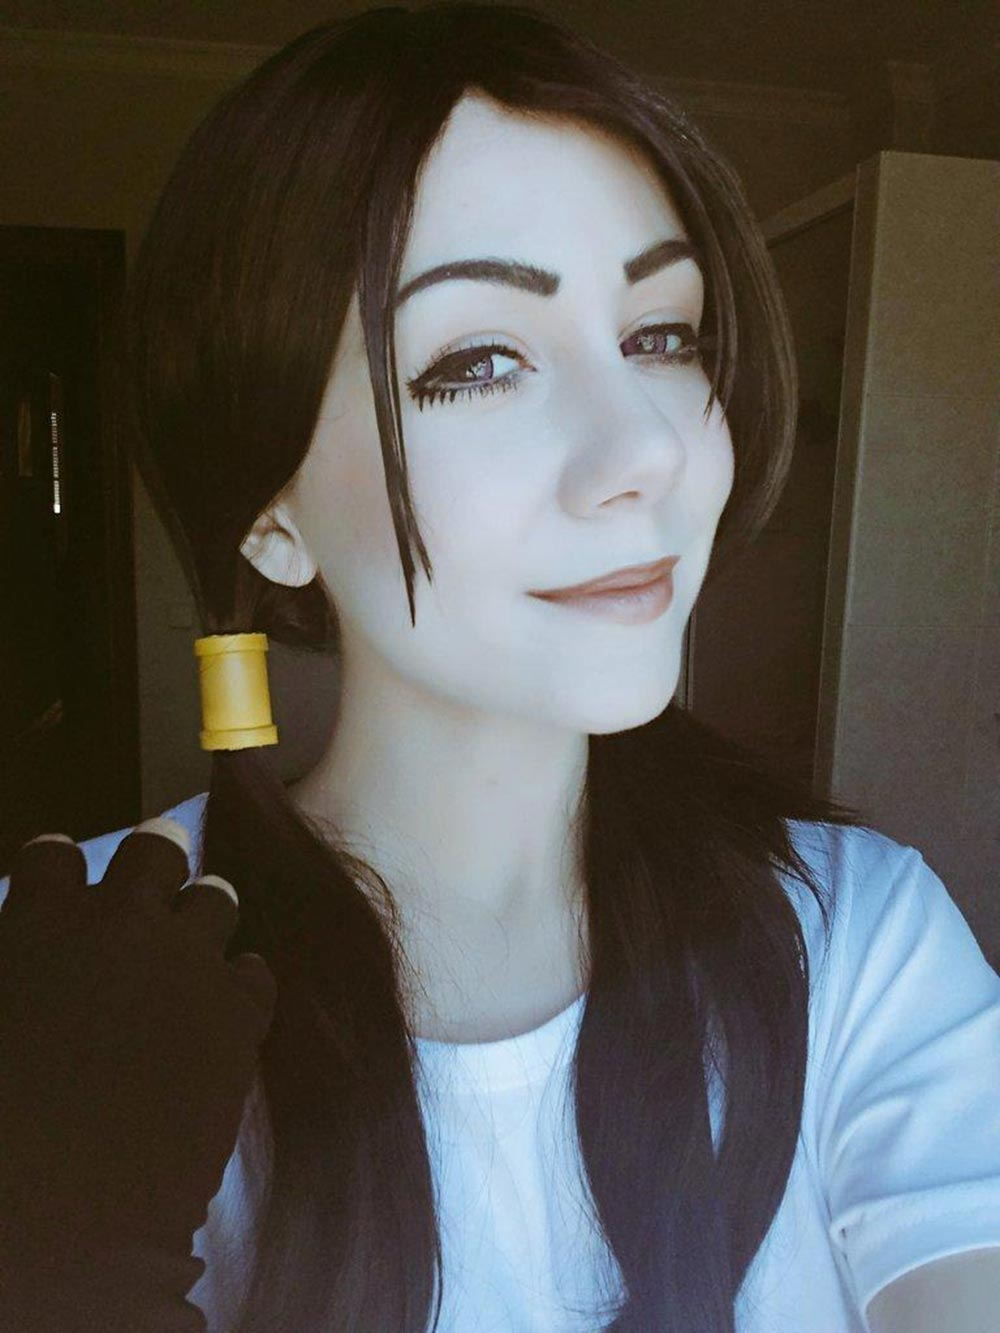 'Dragon Ball Z': Espectacular cosplay de Videl